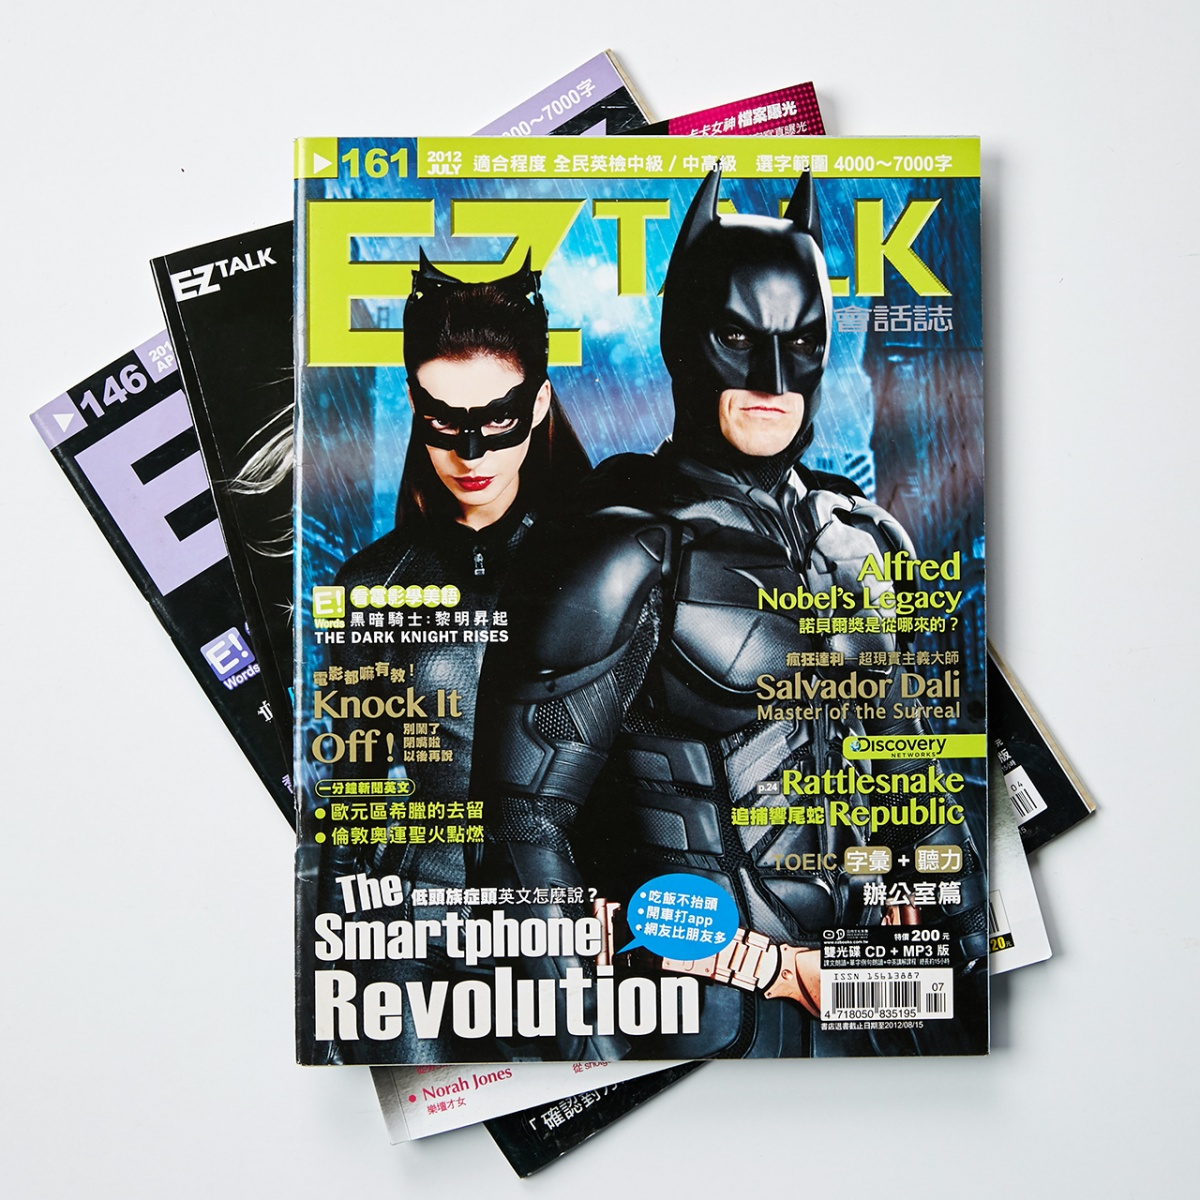 The Dark Knight film cover story layout design on magazine issued in Taiwan in 2012 July